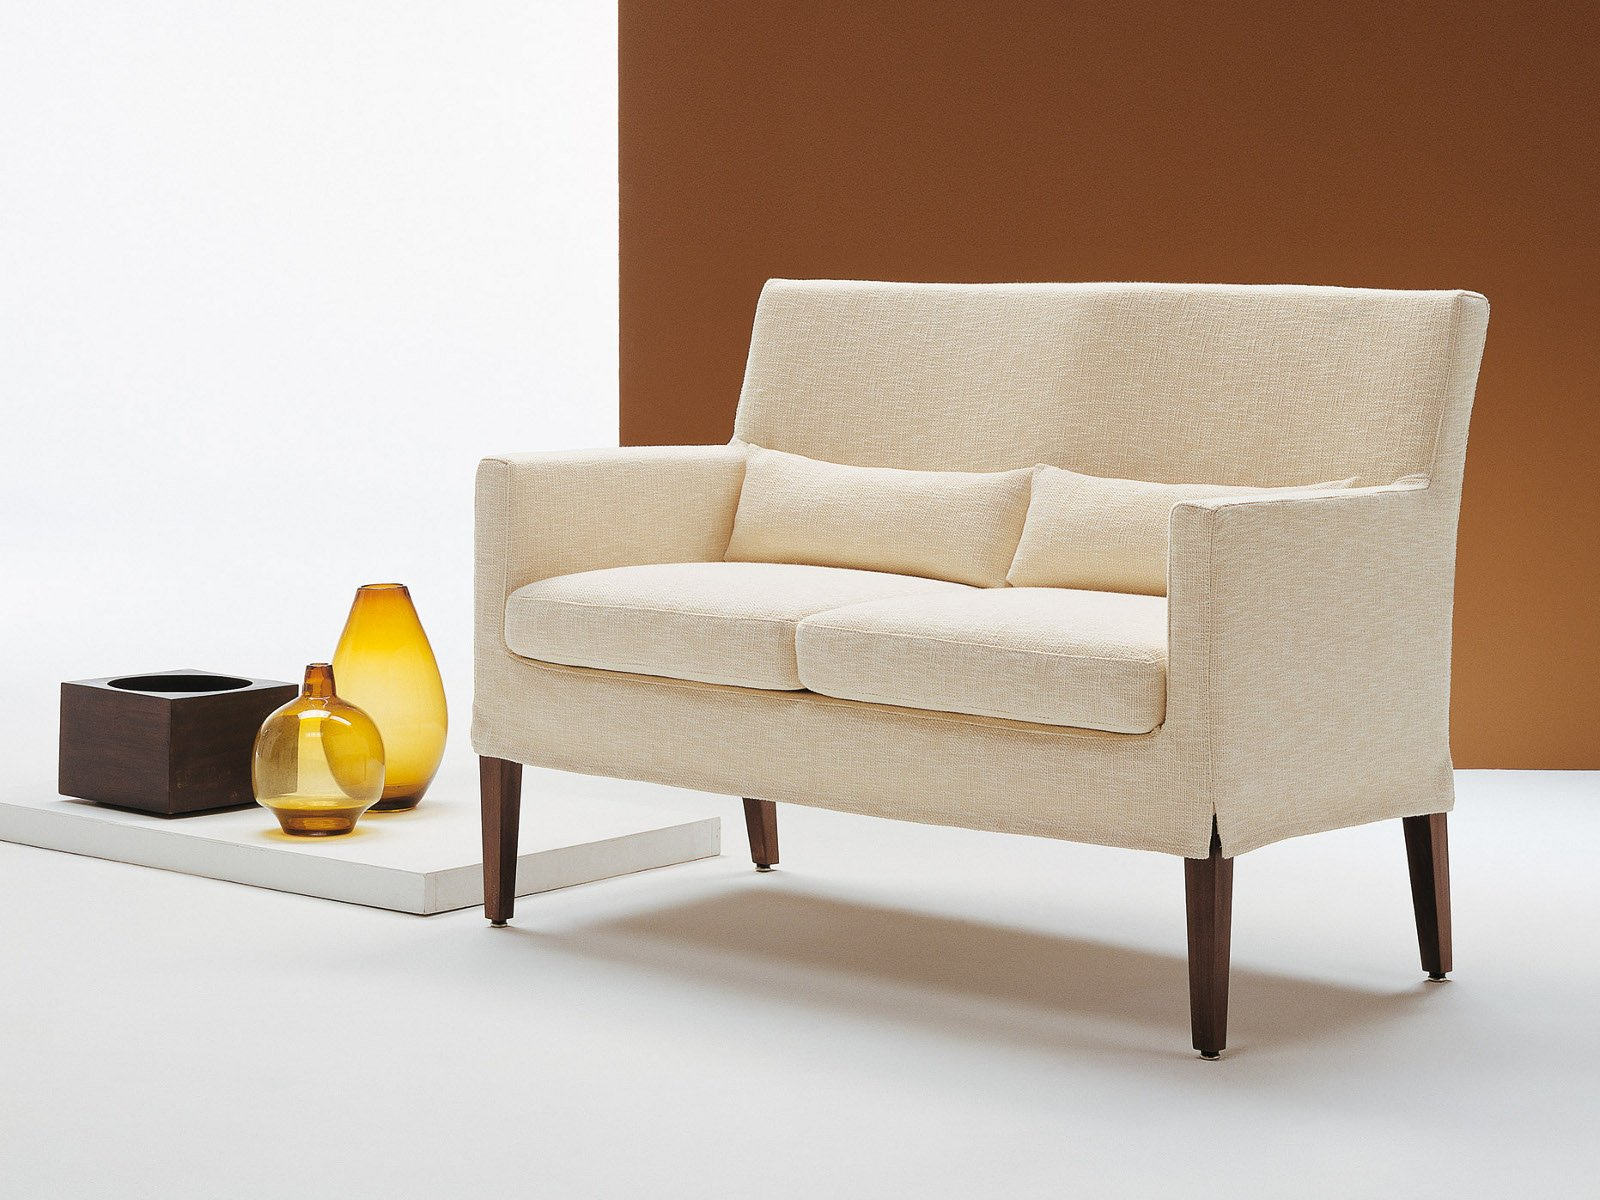 Betty Small Sofa By Bodema Design Danilo Bonfanti